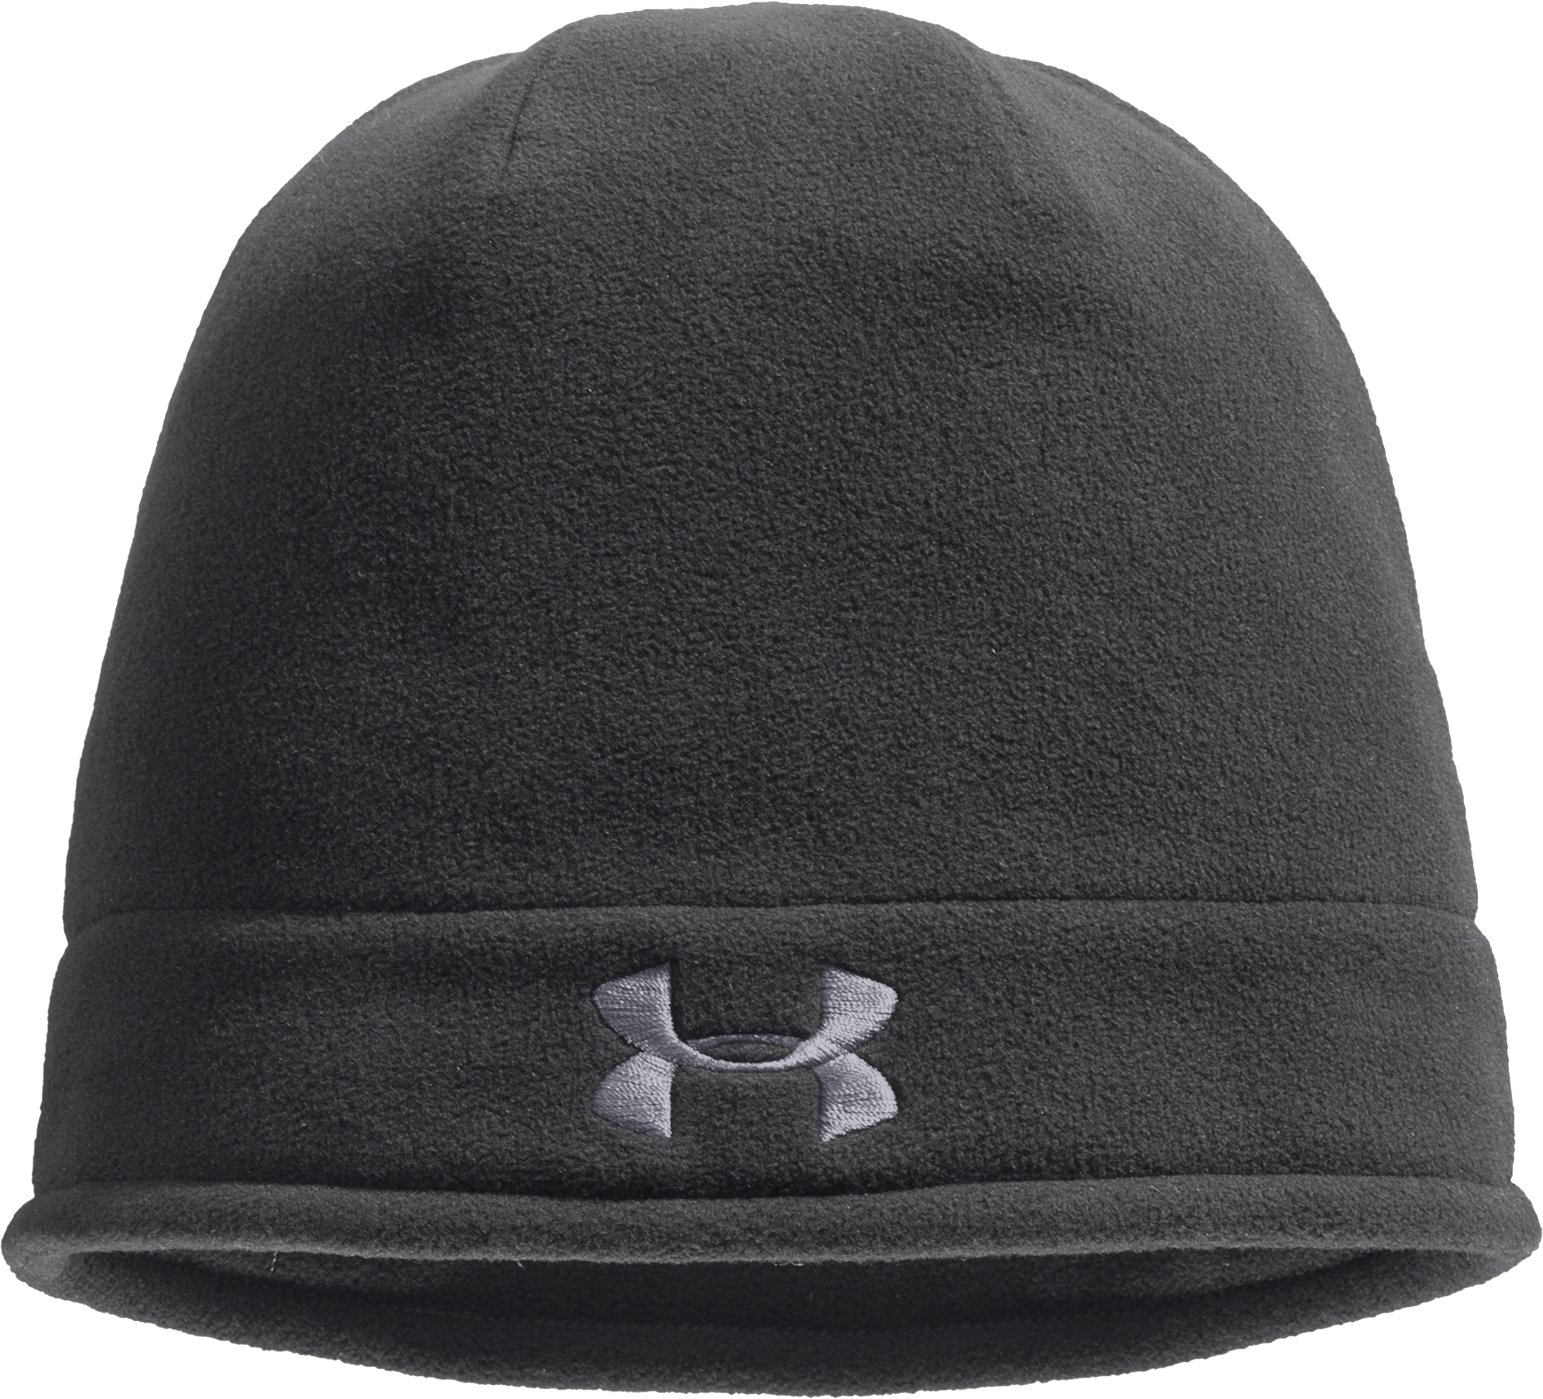 Men's ColdGear® Infrared Fleece Storm Beanie, Graphite, undefined